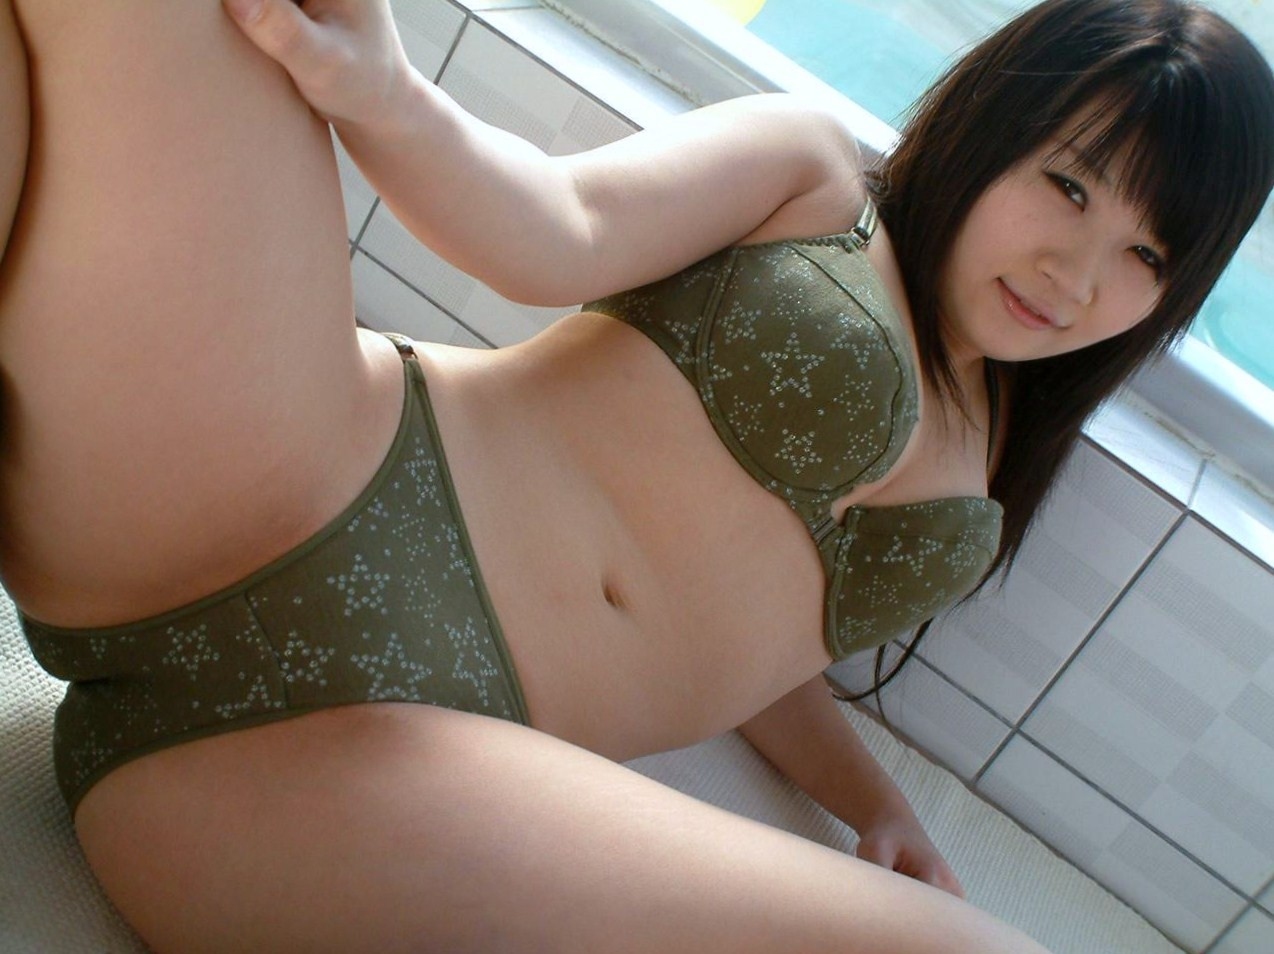 Hot Girl Japanese 18 Jav Girl Nude Xxx-9792